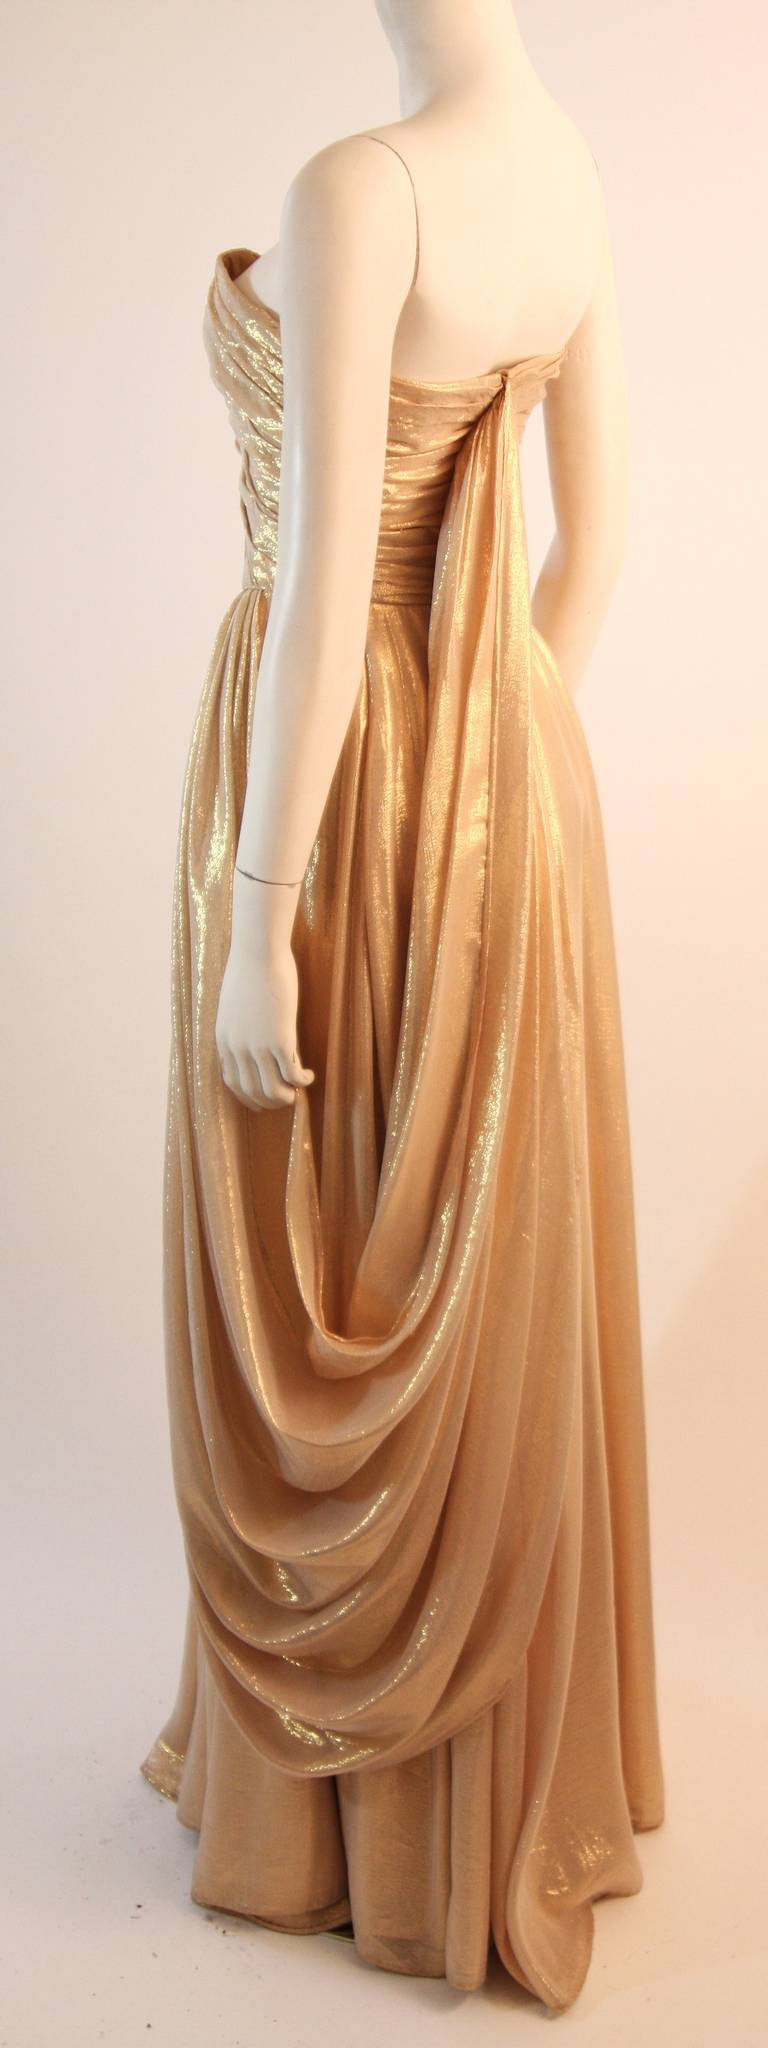 Elizabeth Mason Couture Custom Draped Strapless Gold Lame Gown For Sale 1